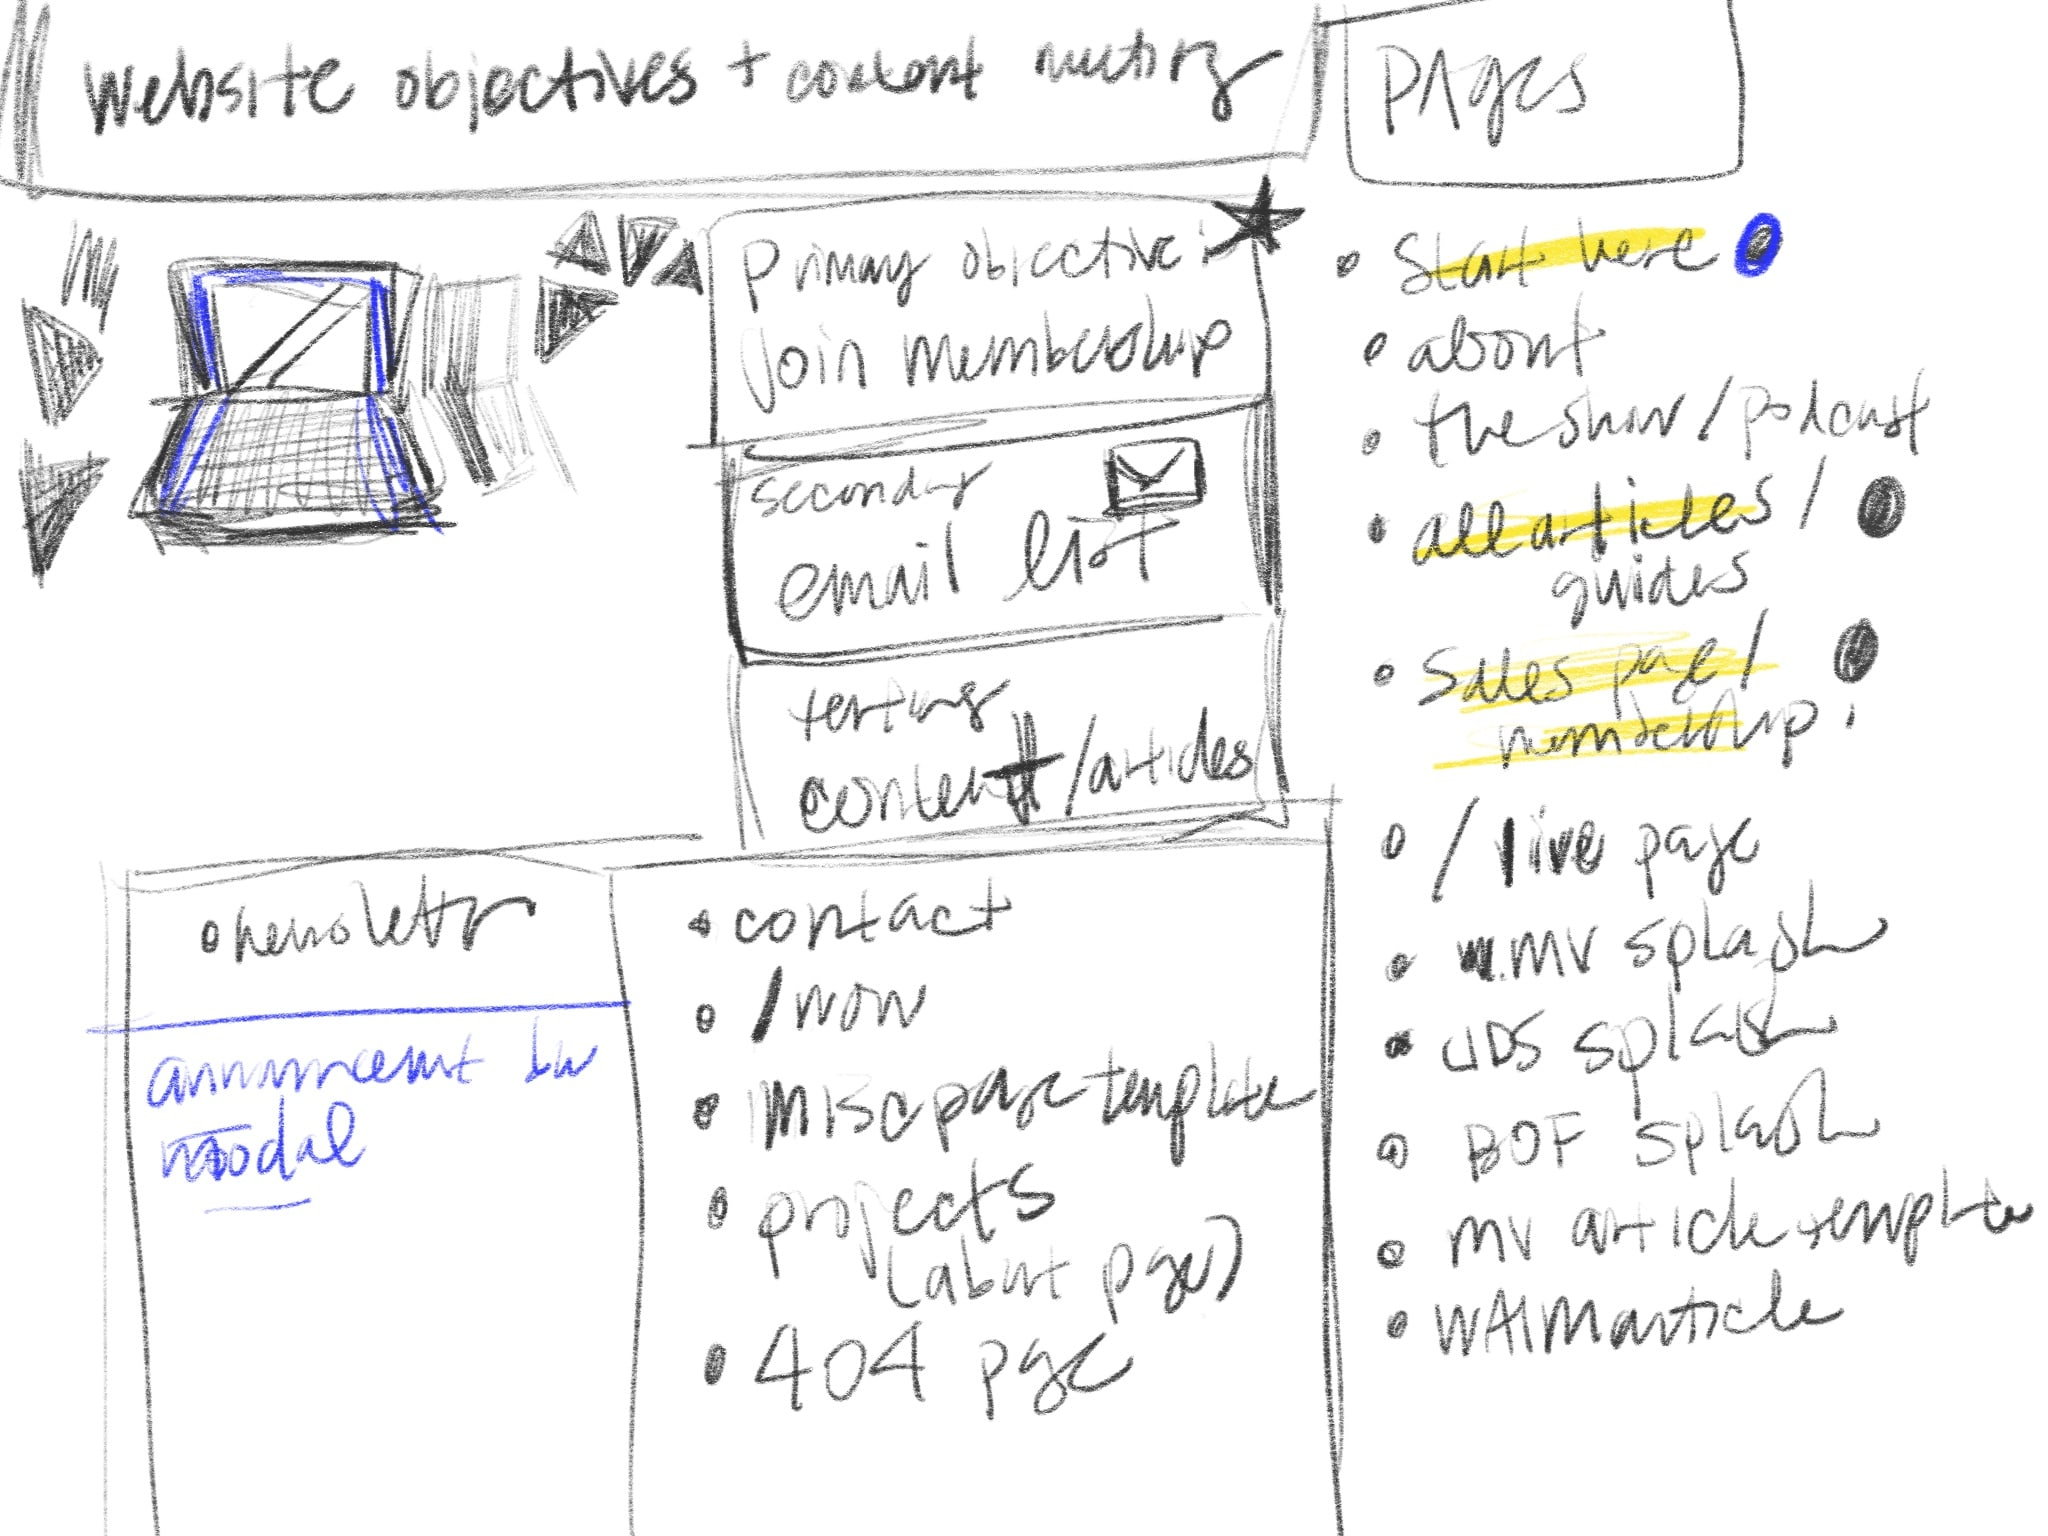 Caroline's SUPER official and important and really helpful notes. Definitely not just a doodle of a laptop with some chicken scratch. Definitely NOT.